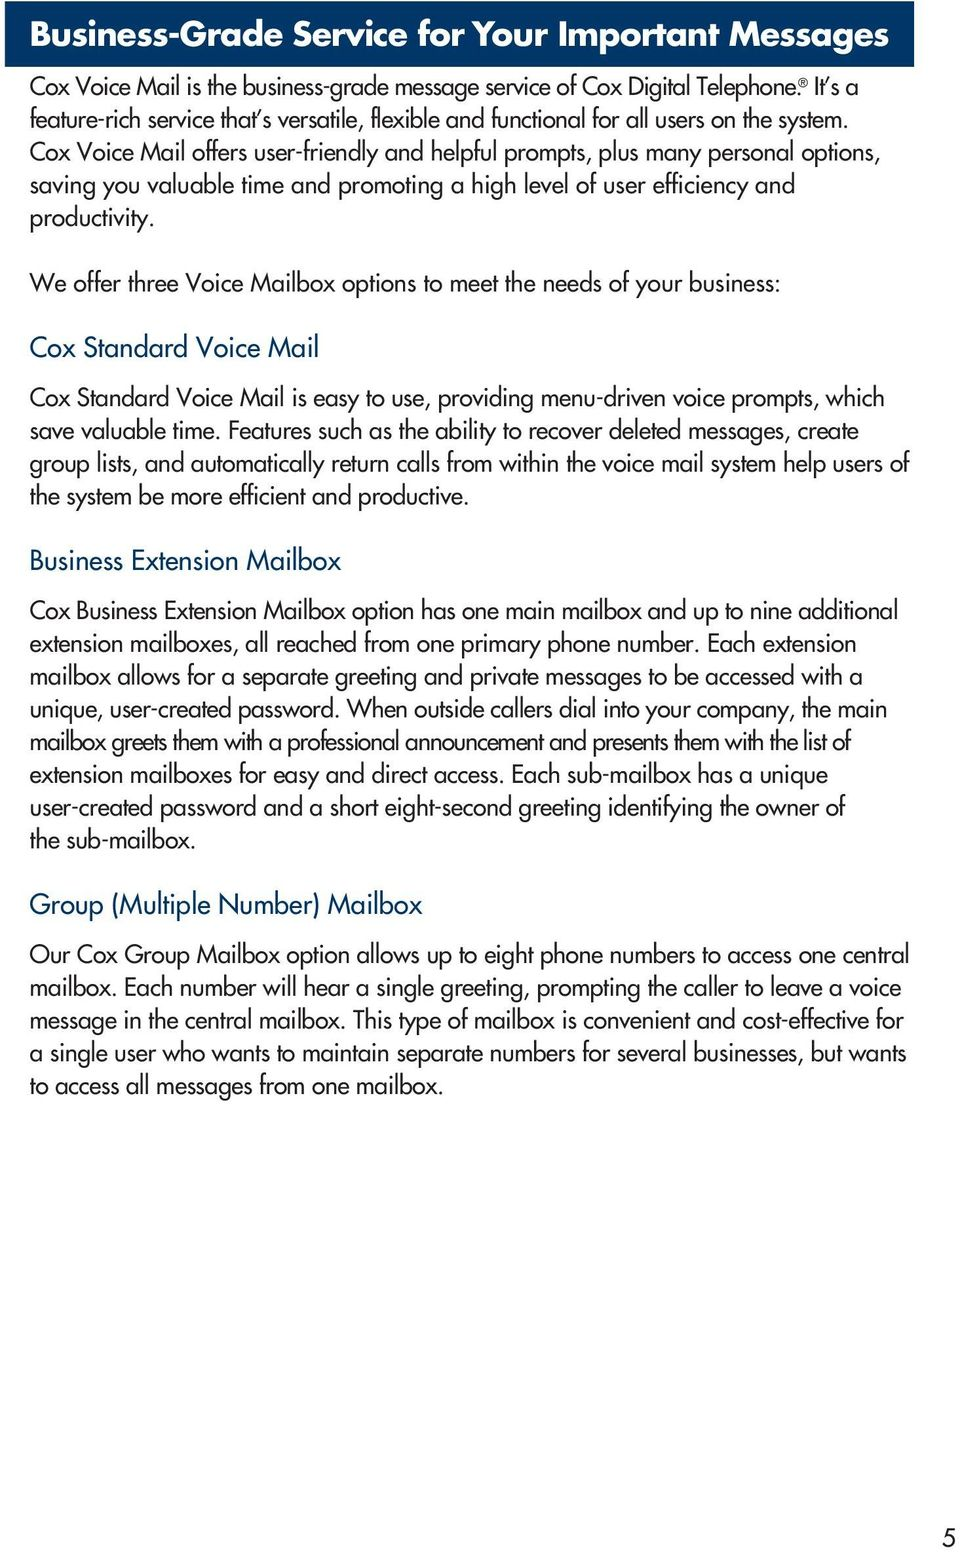 Cox Voice Mail offers user-friendly and helpful prompts, plus many personal options, saving you valuable time and promoting a high level of user efficiency and productivity.